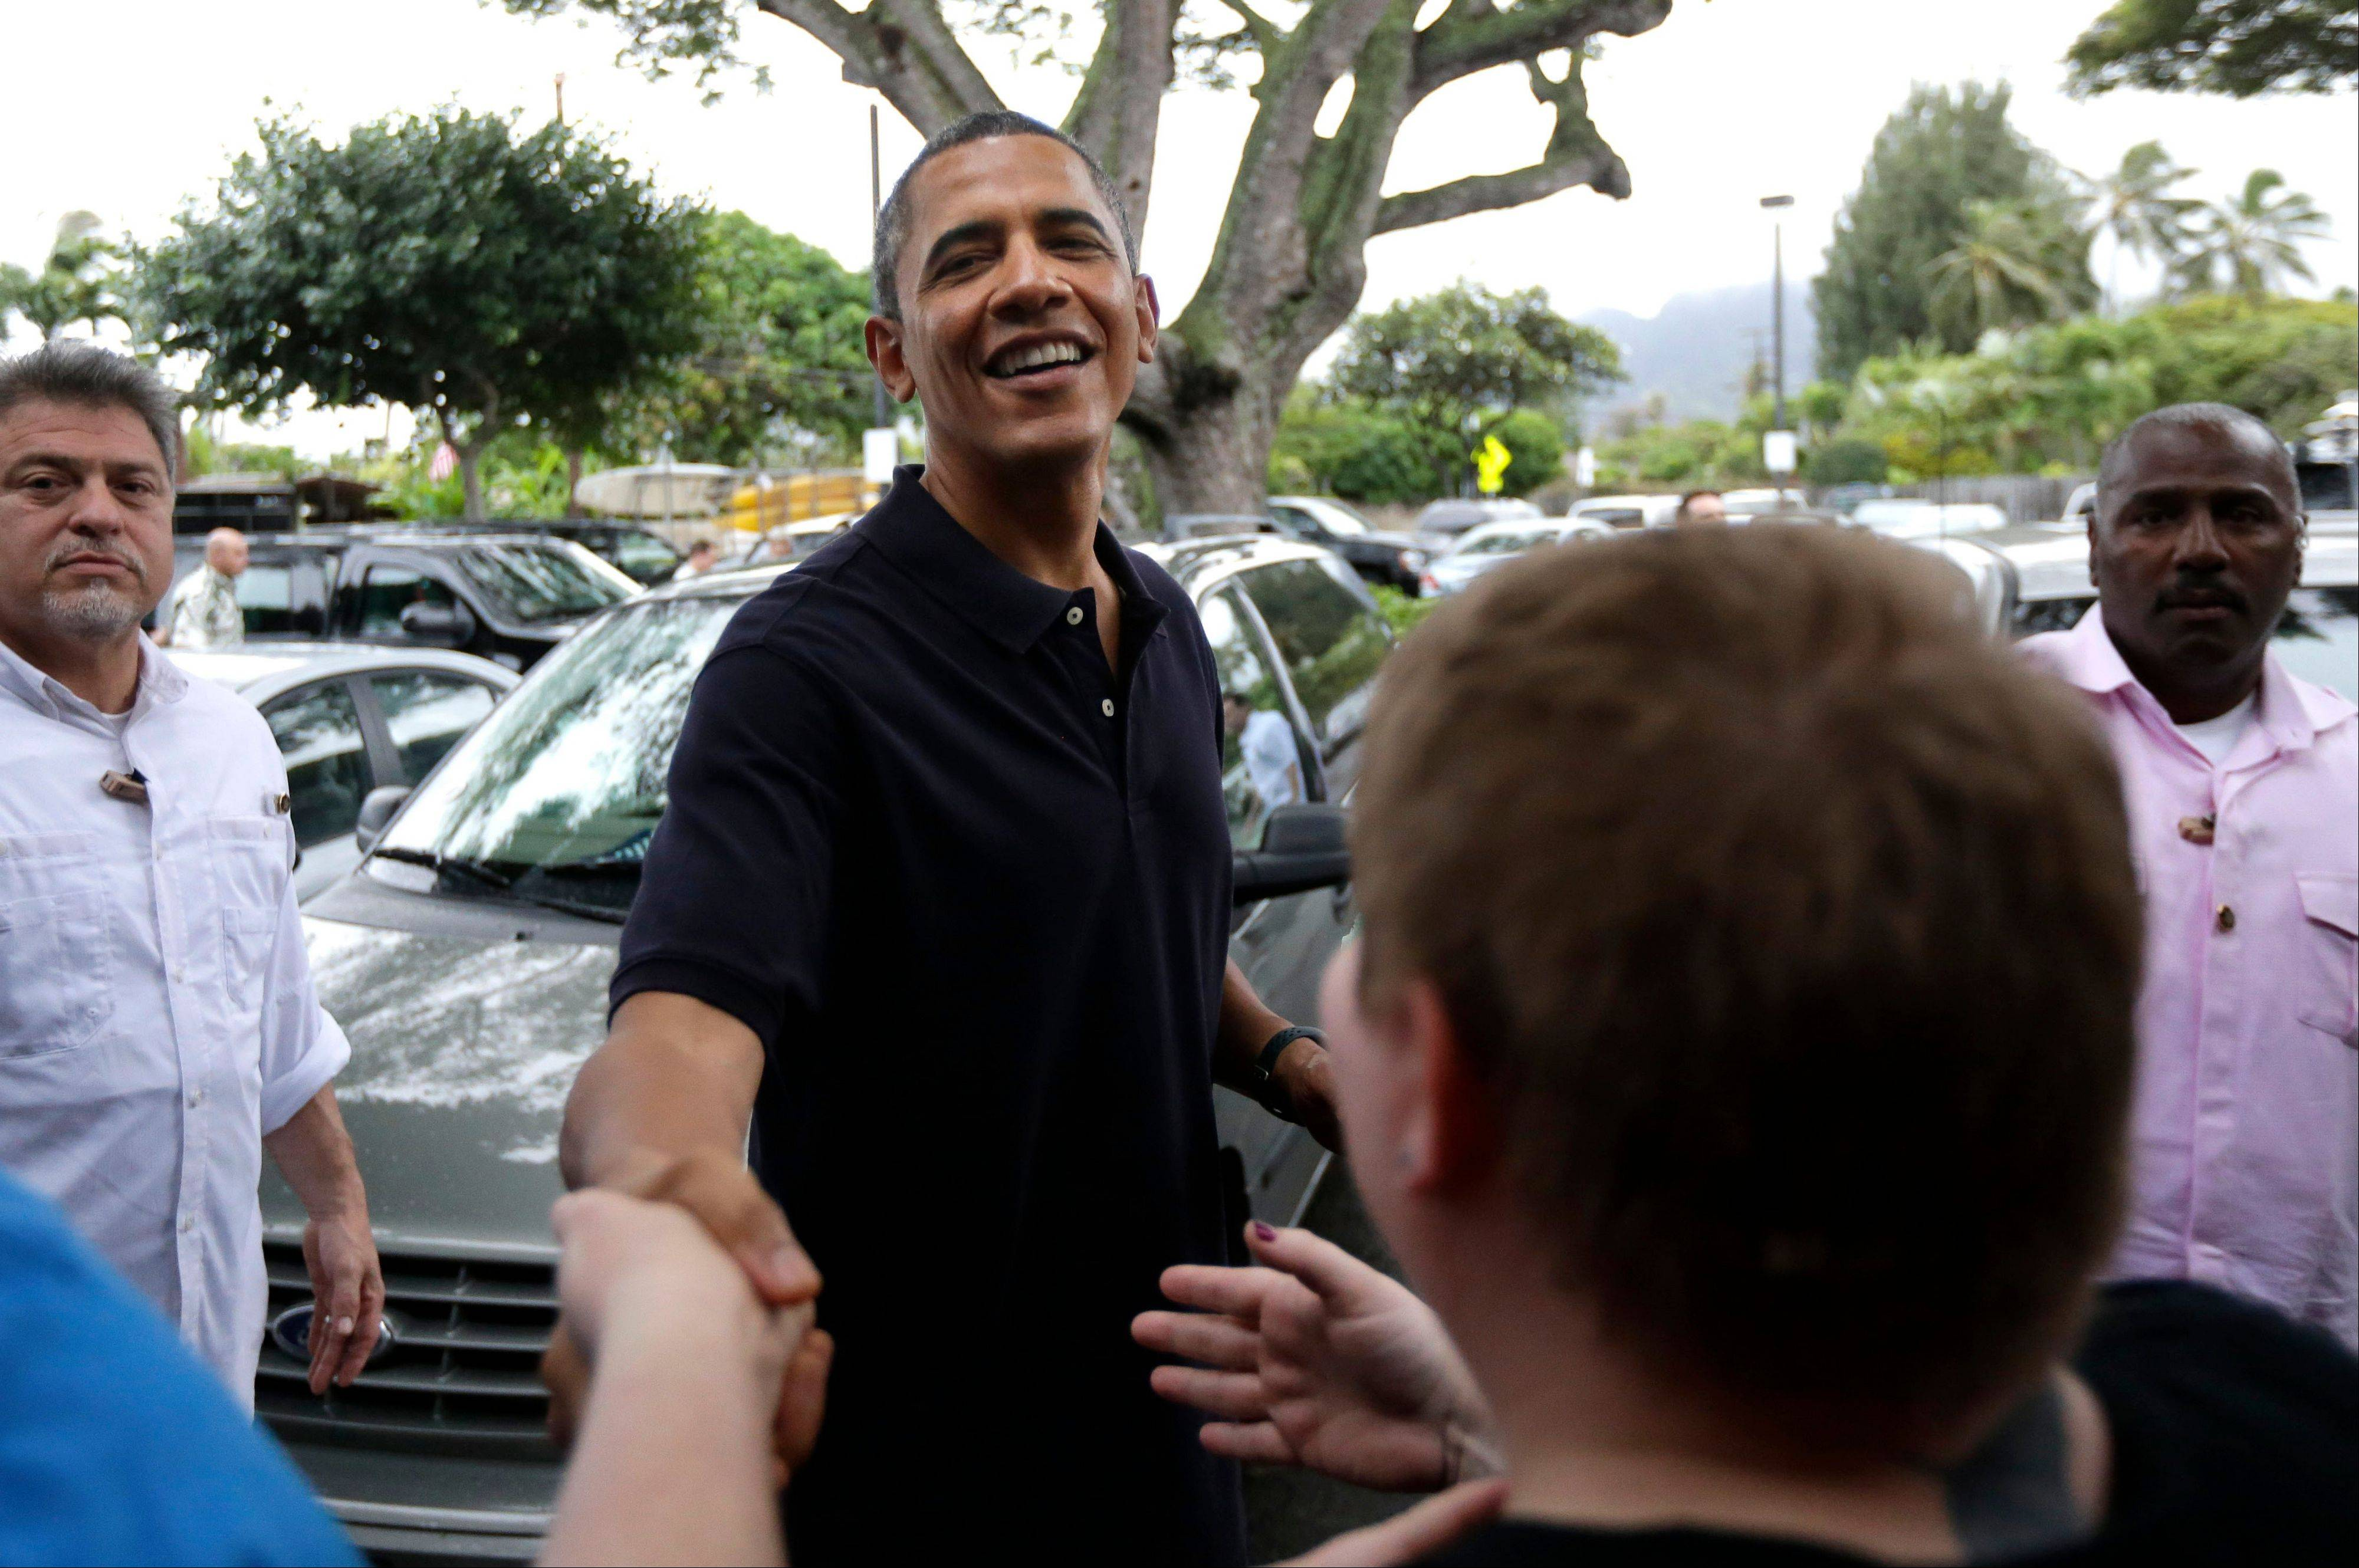 President Barack Obama greets people Thursday as he visits Island Snow for shave ice in Kailua, Hawaii, during his holiday vacation.